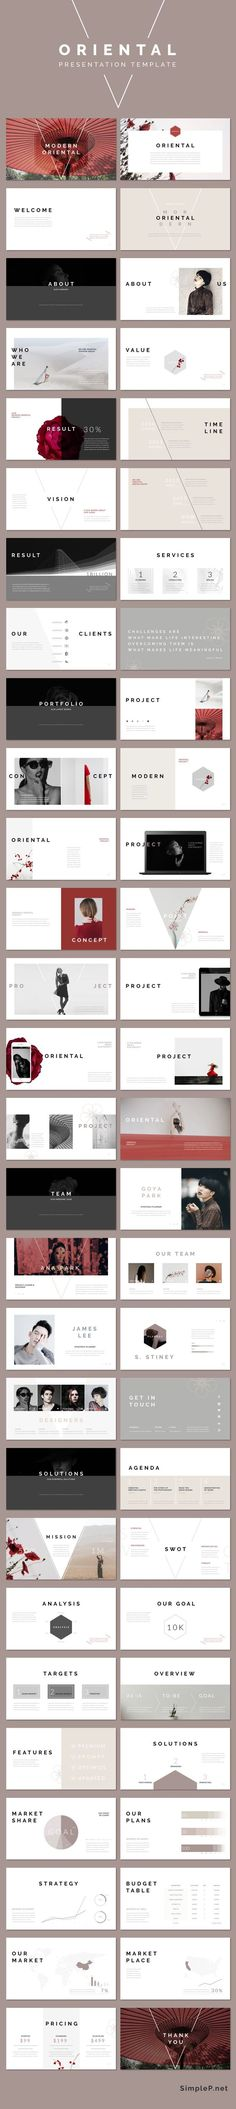 Modern Stylish Keynote Presentation Template #ppttemplate #oriental #portfolio #business #marketing #proposal